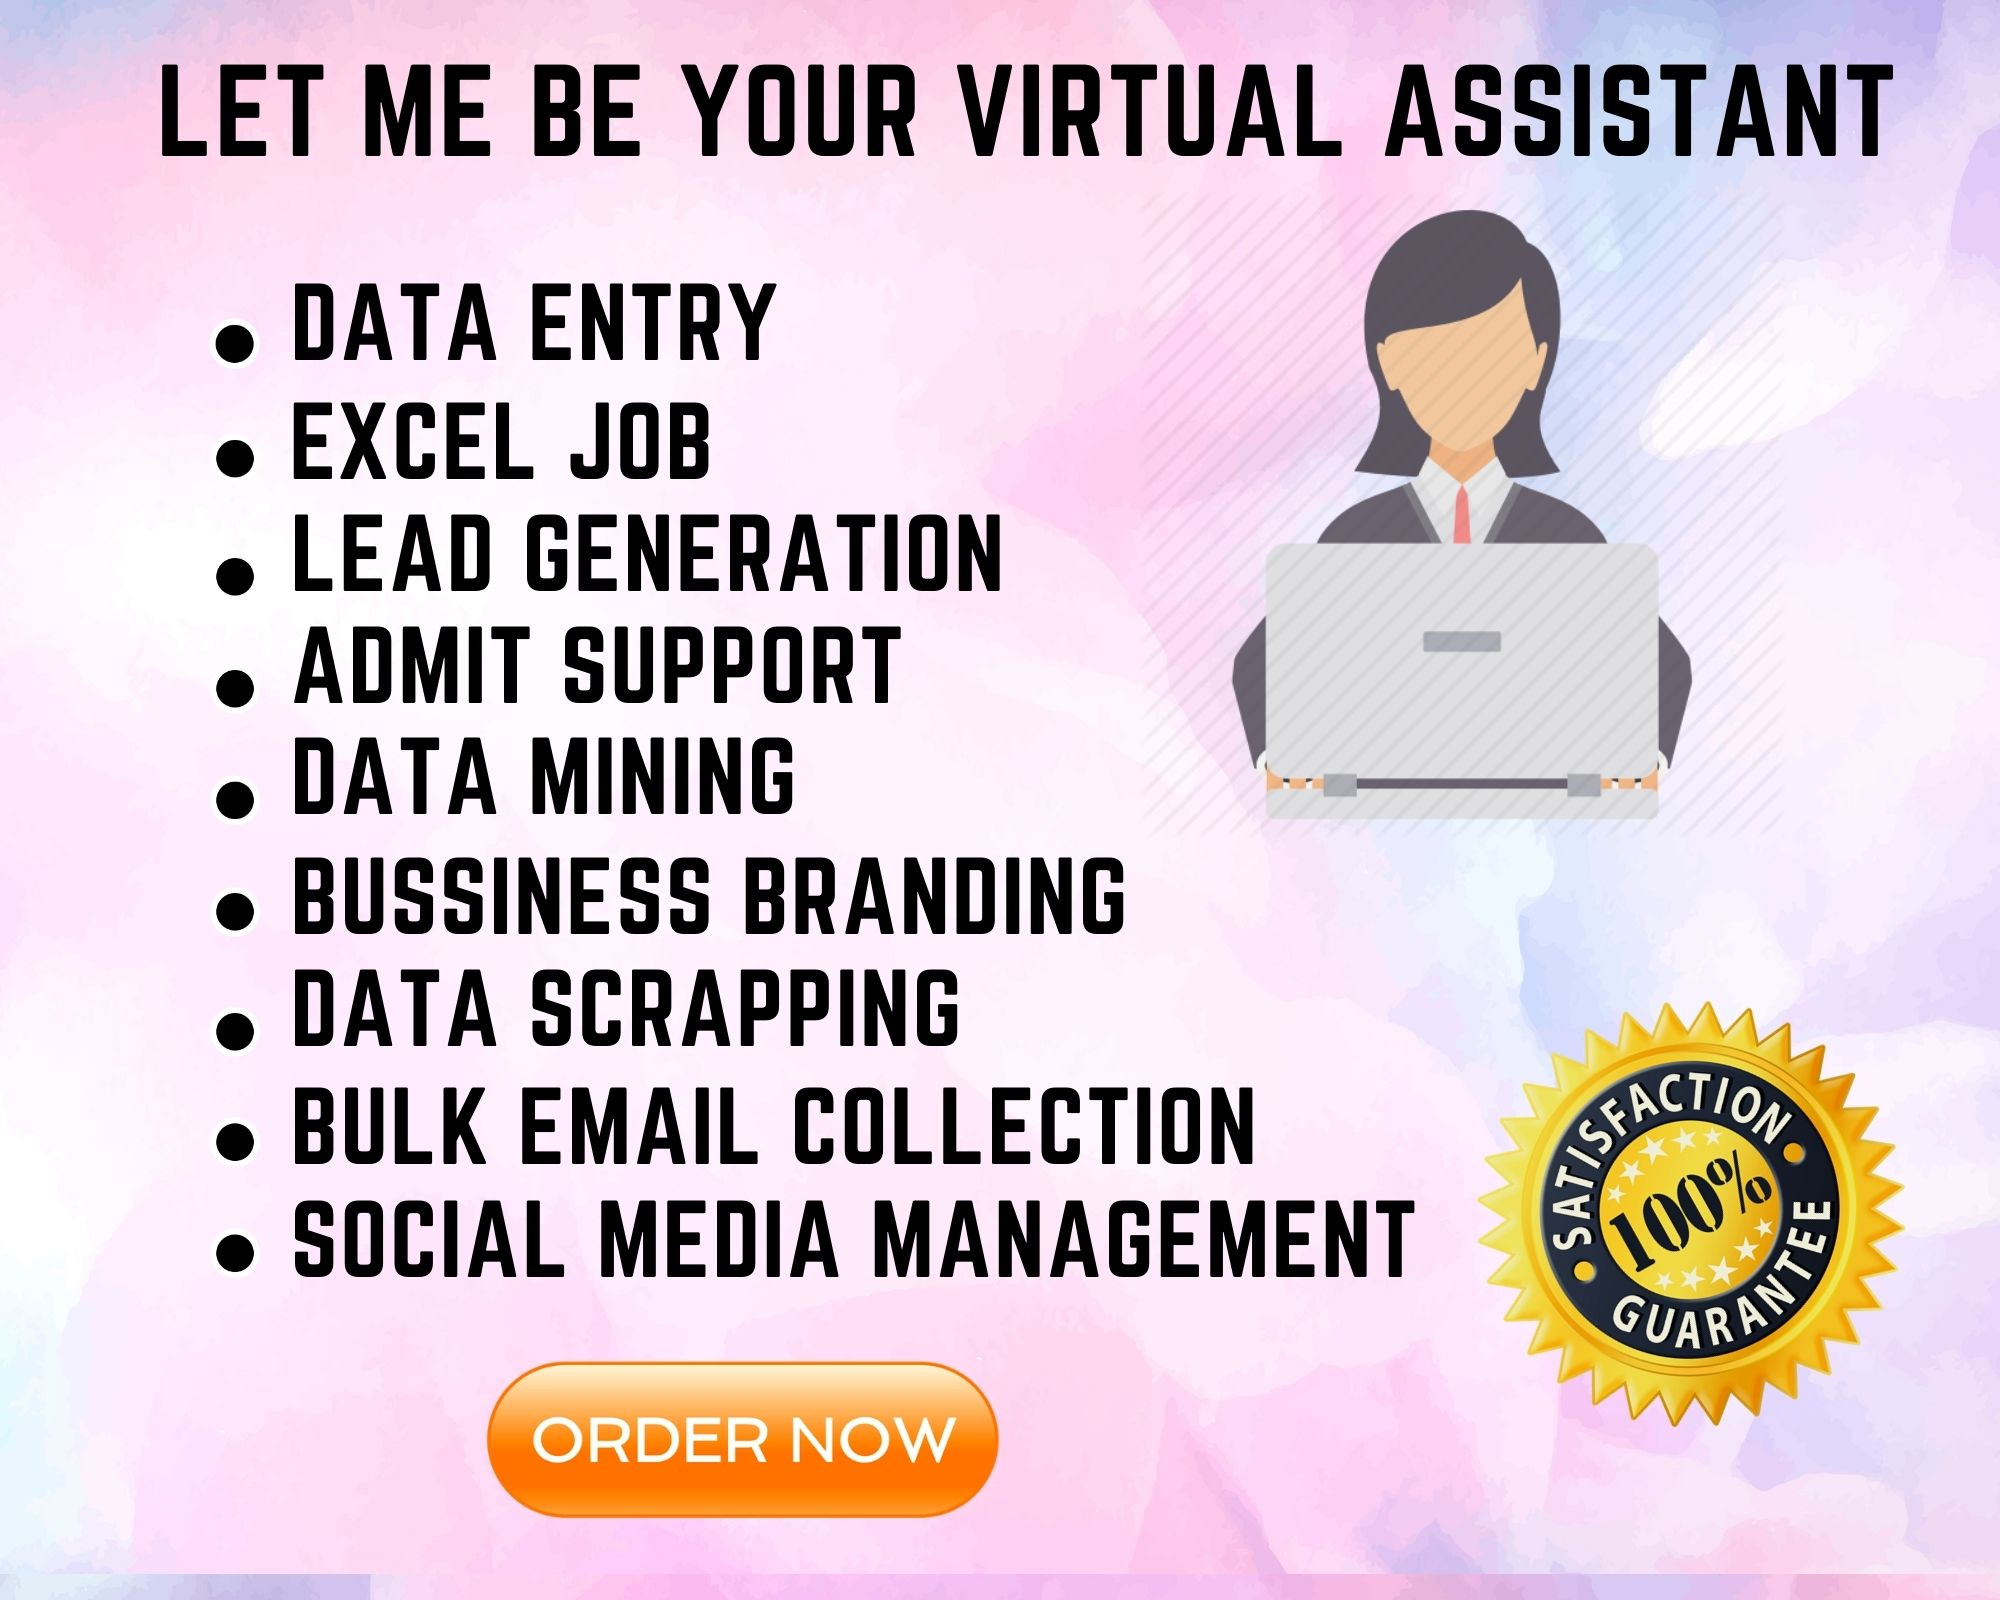 I will be your credible Virtual Assistant for Data Entry and Web Research